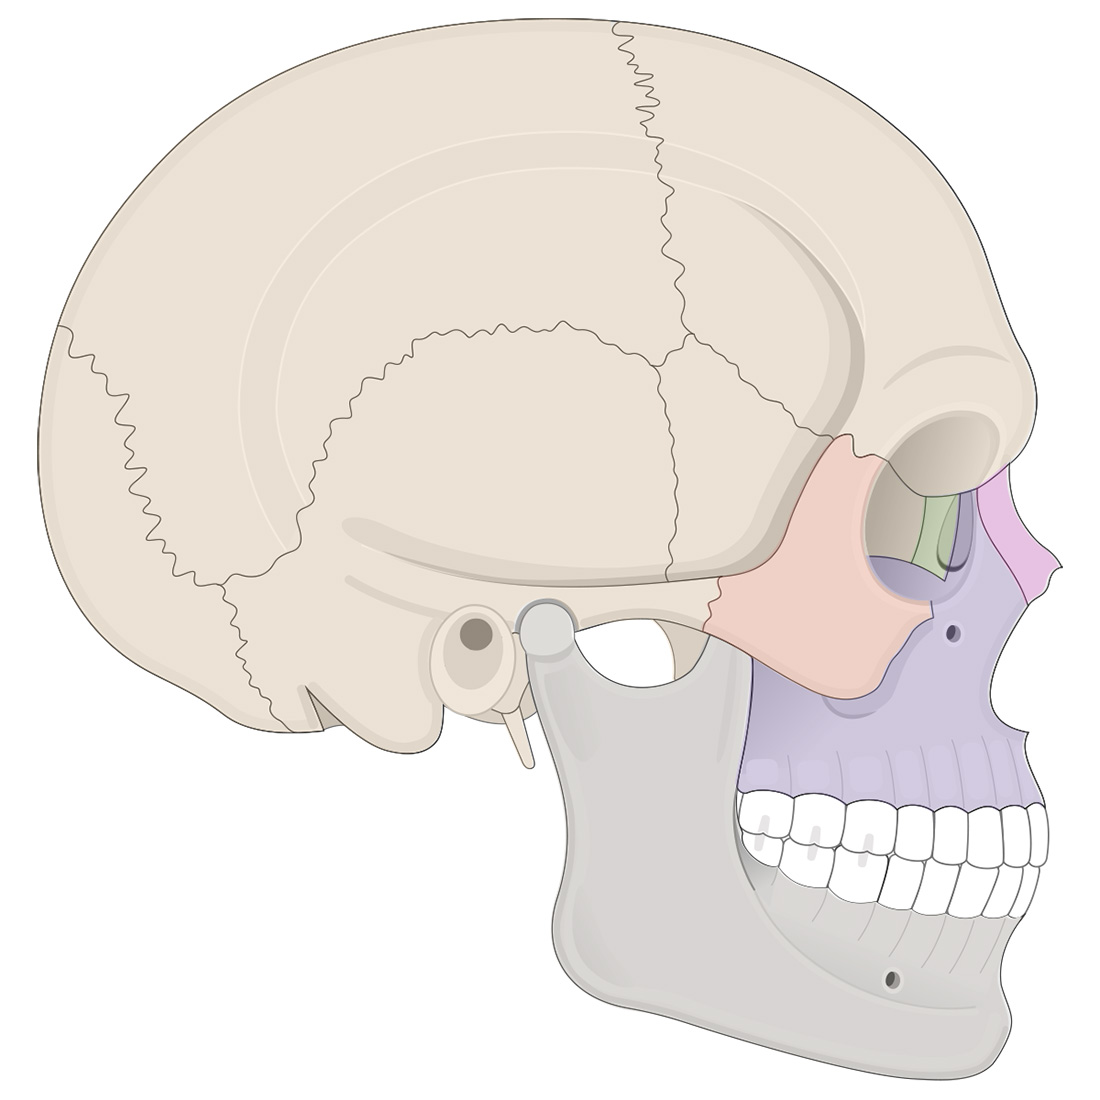 Facial bones: lateral view of the skull